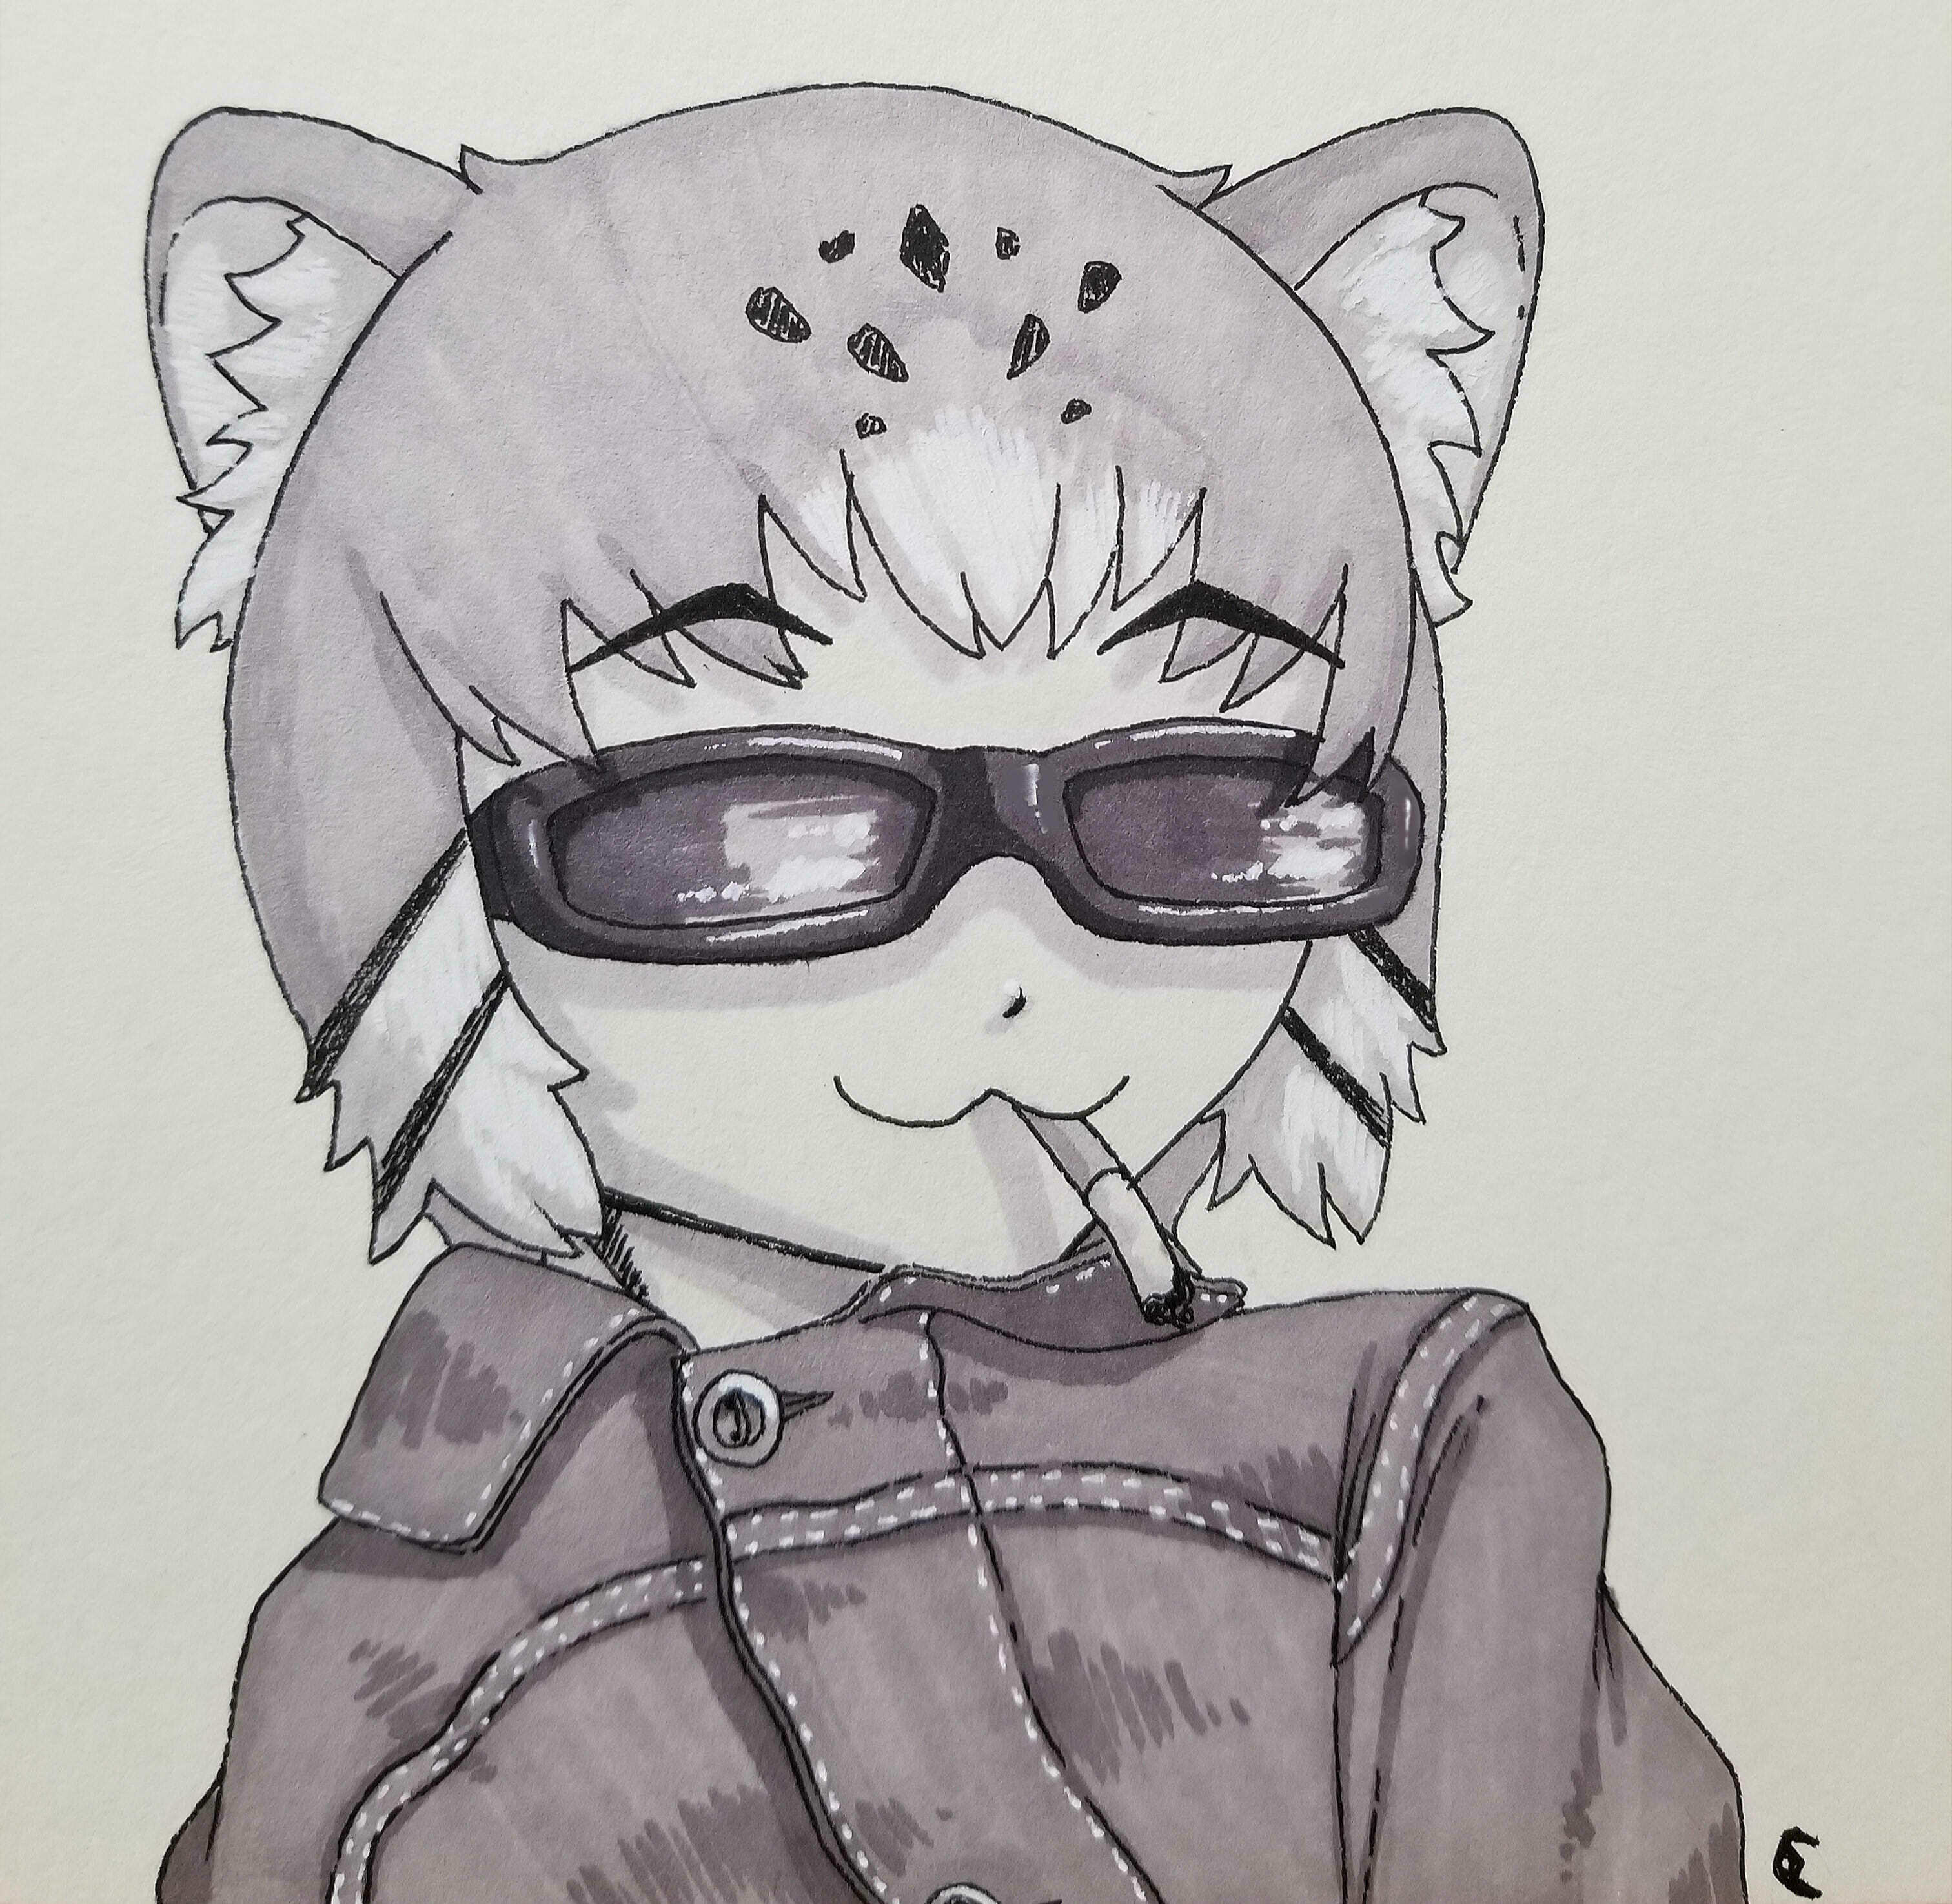 Inktober Day 16: Pallas' (Cool) Cat